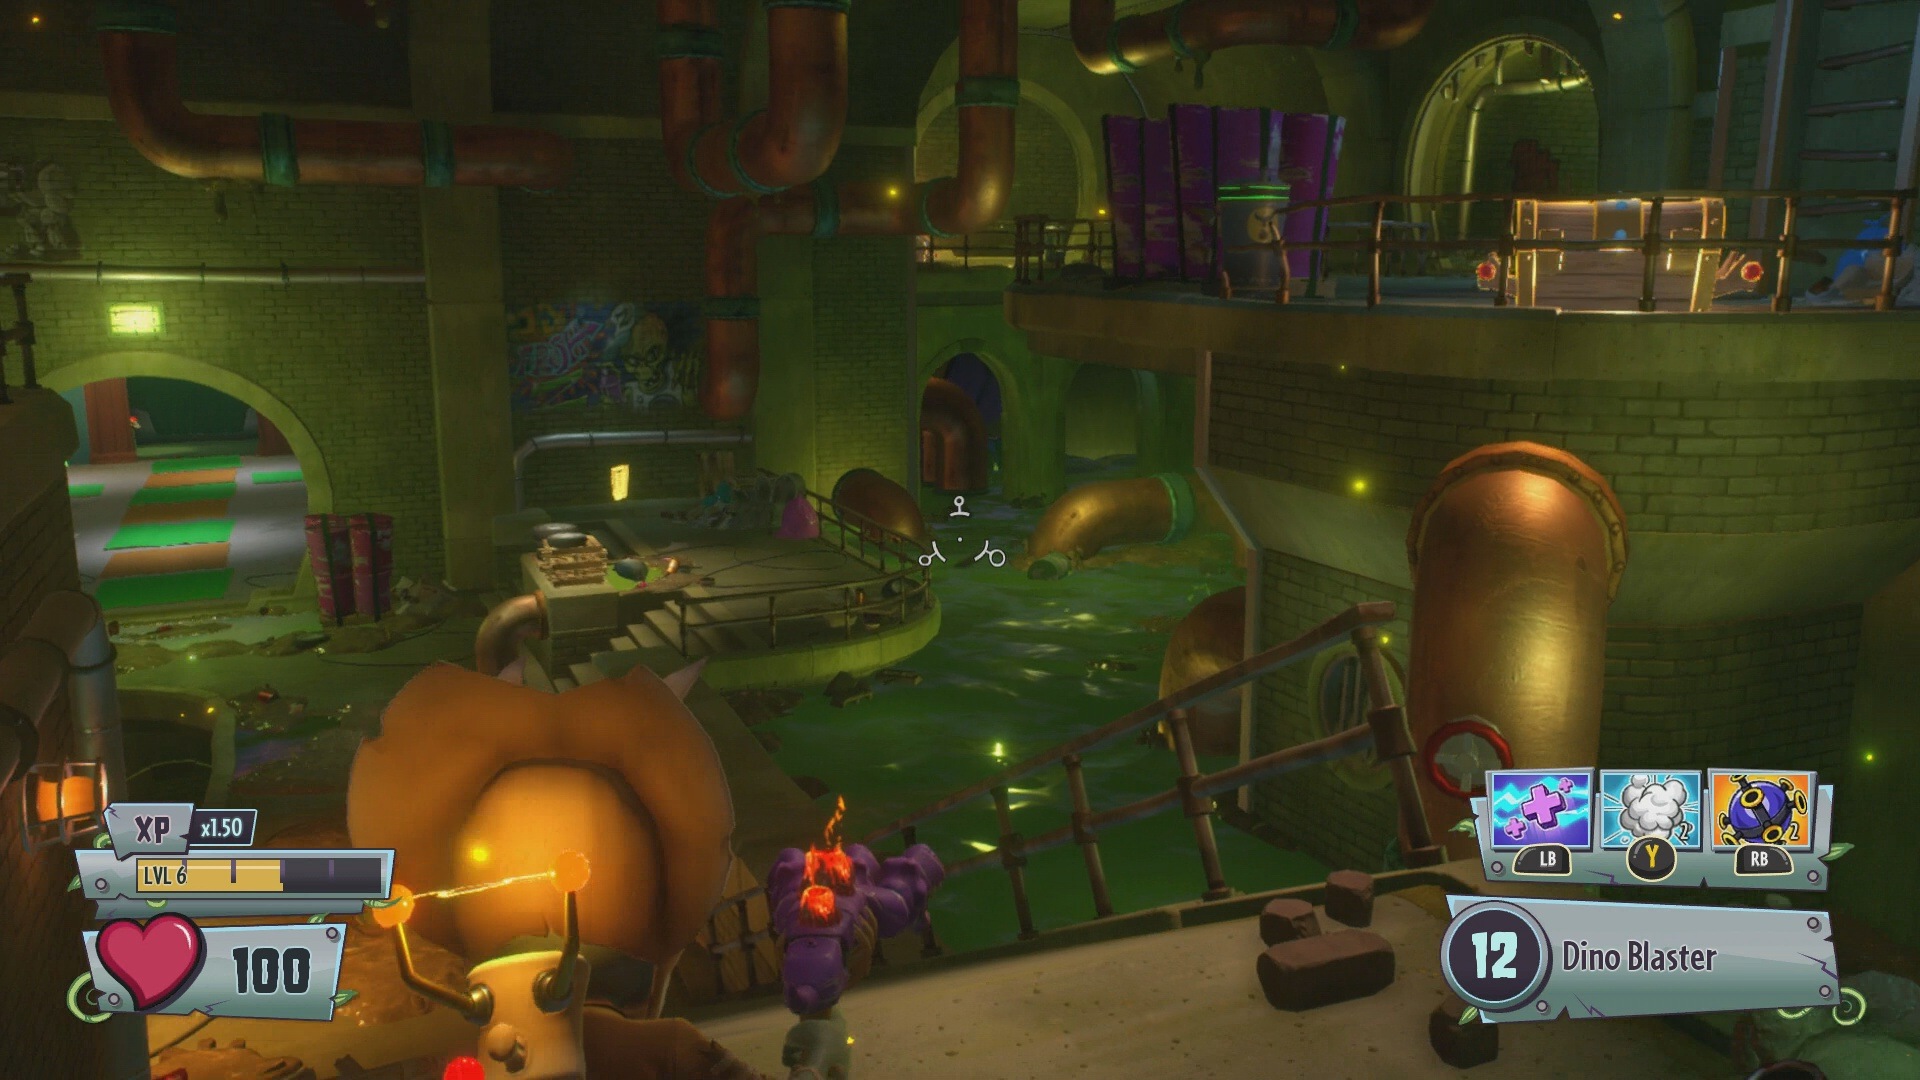 Plants vs Zombies Garden Warfare 2 - Free Coin Chests | USgamer